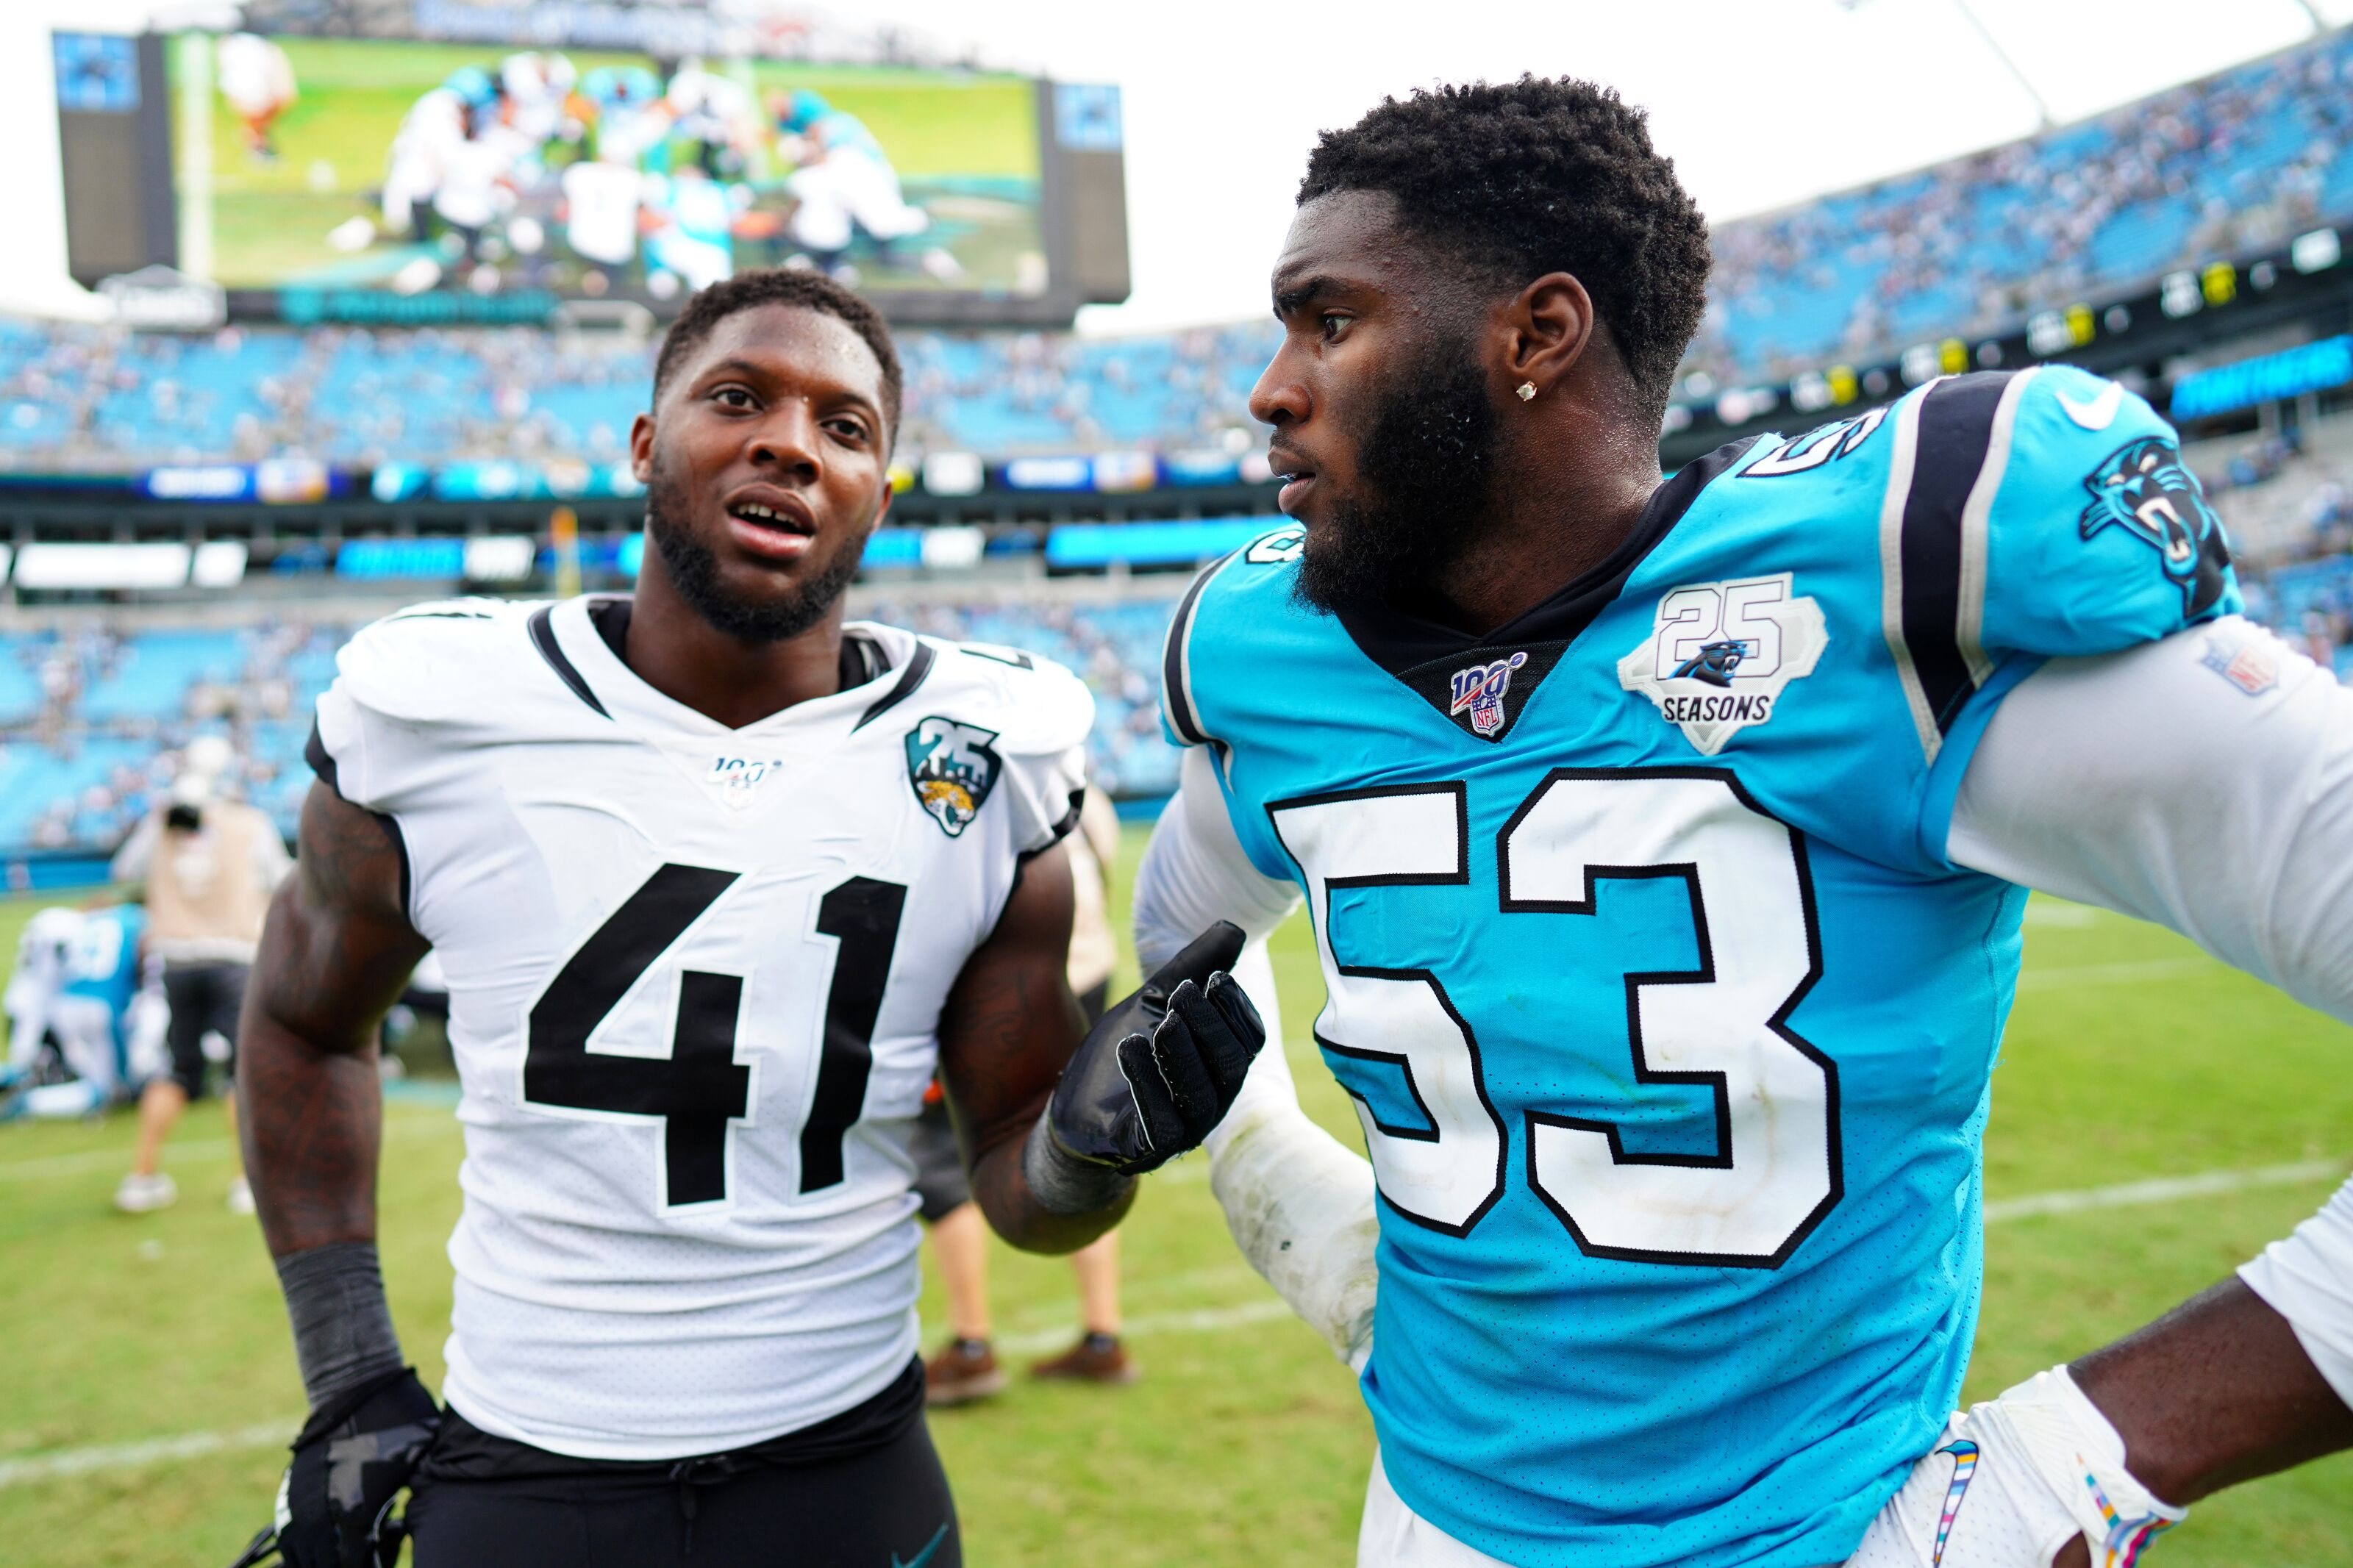 The Jaguars look to regain winning feeling on Sunday